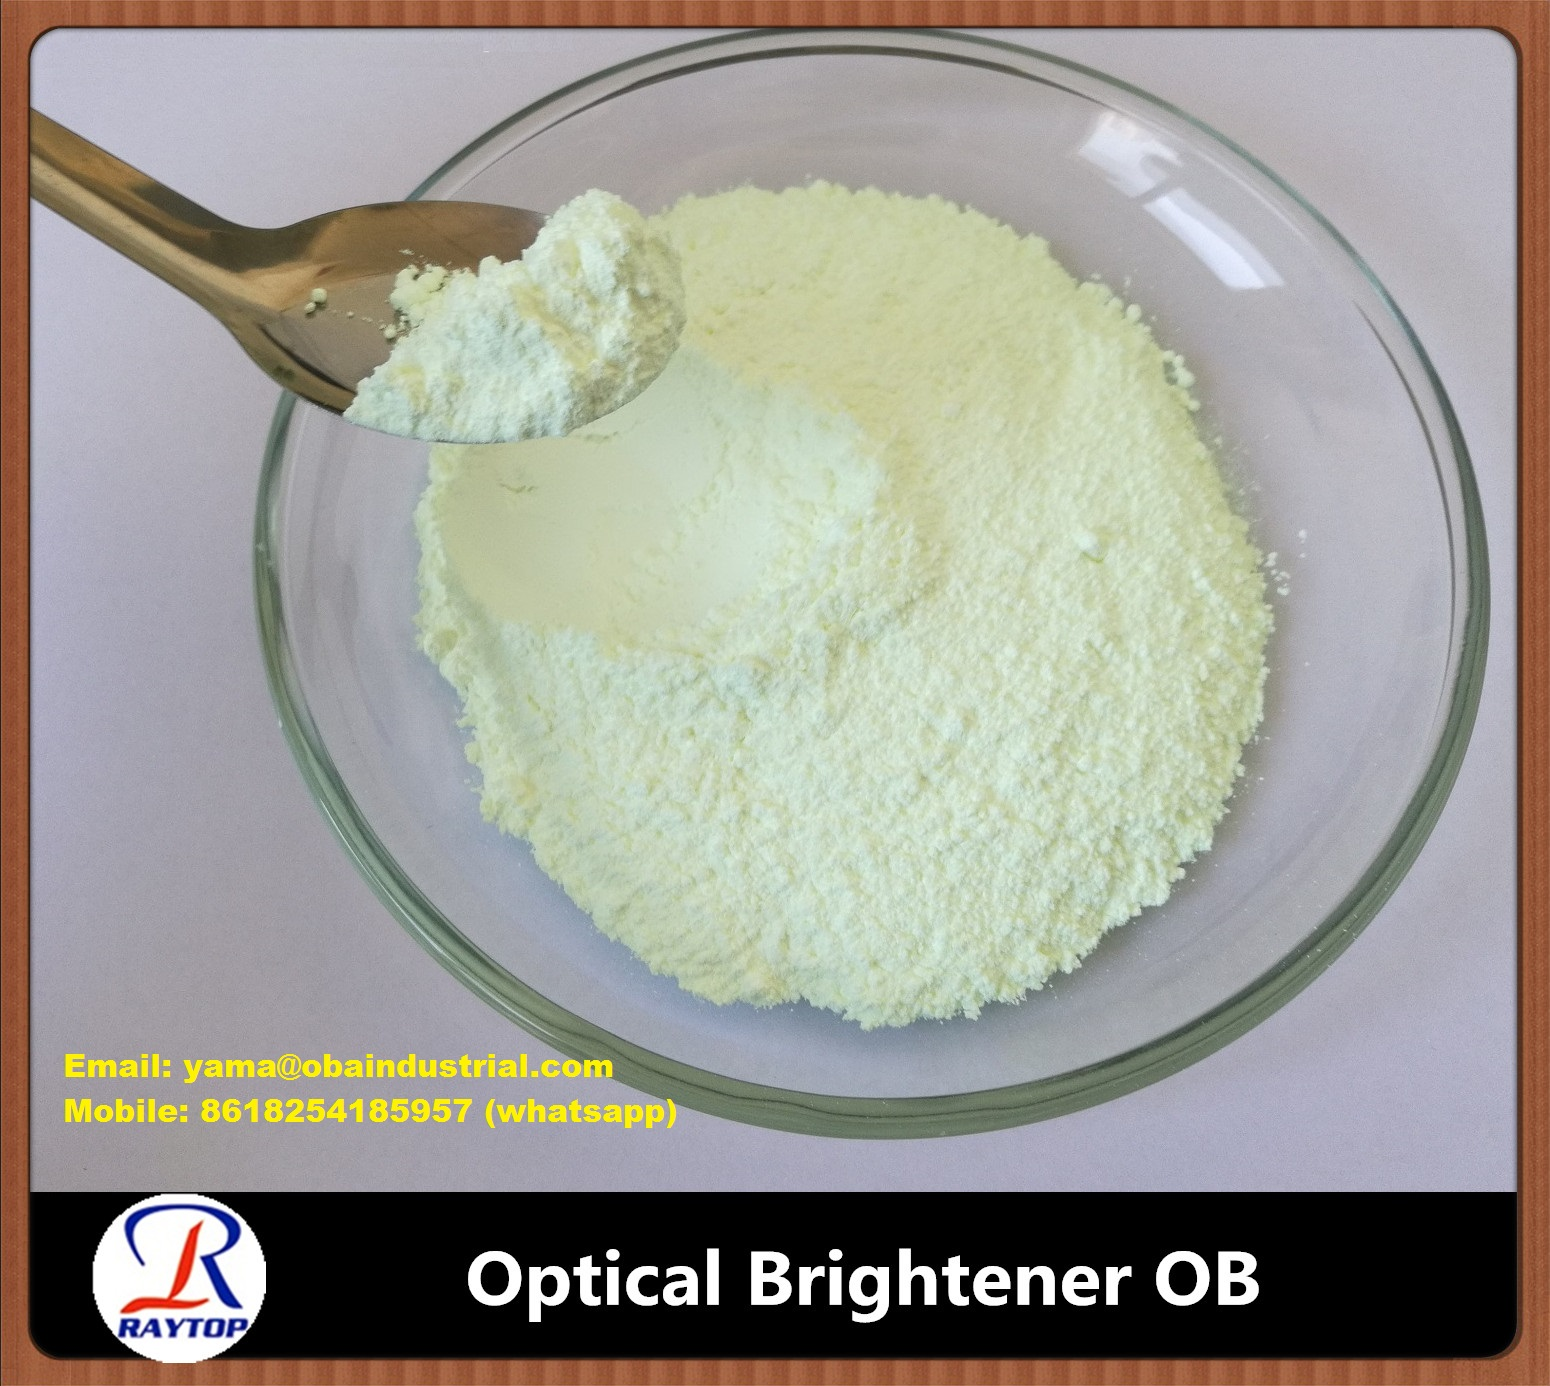 Competitive price for the pure quality of optical brightener OB With pure quality